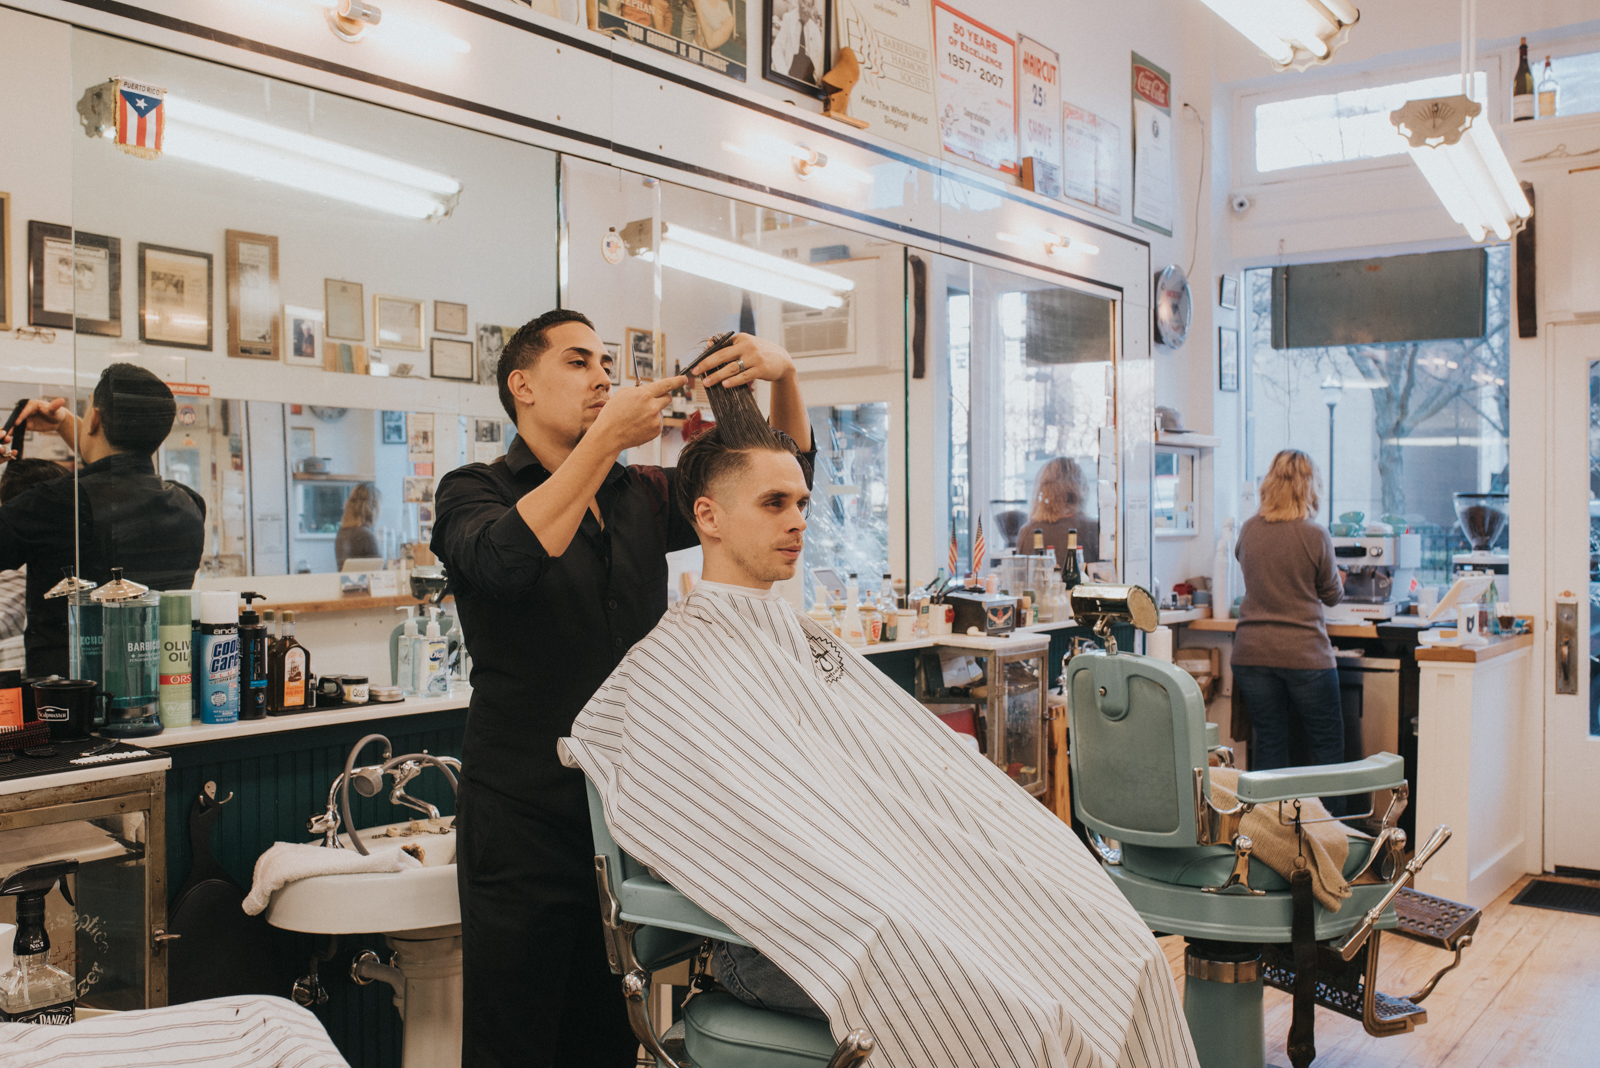 Barber Felix cutting Levi's hair / Image: Brianna Long // Published: 12.29.17